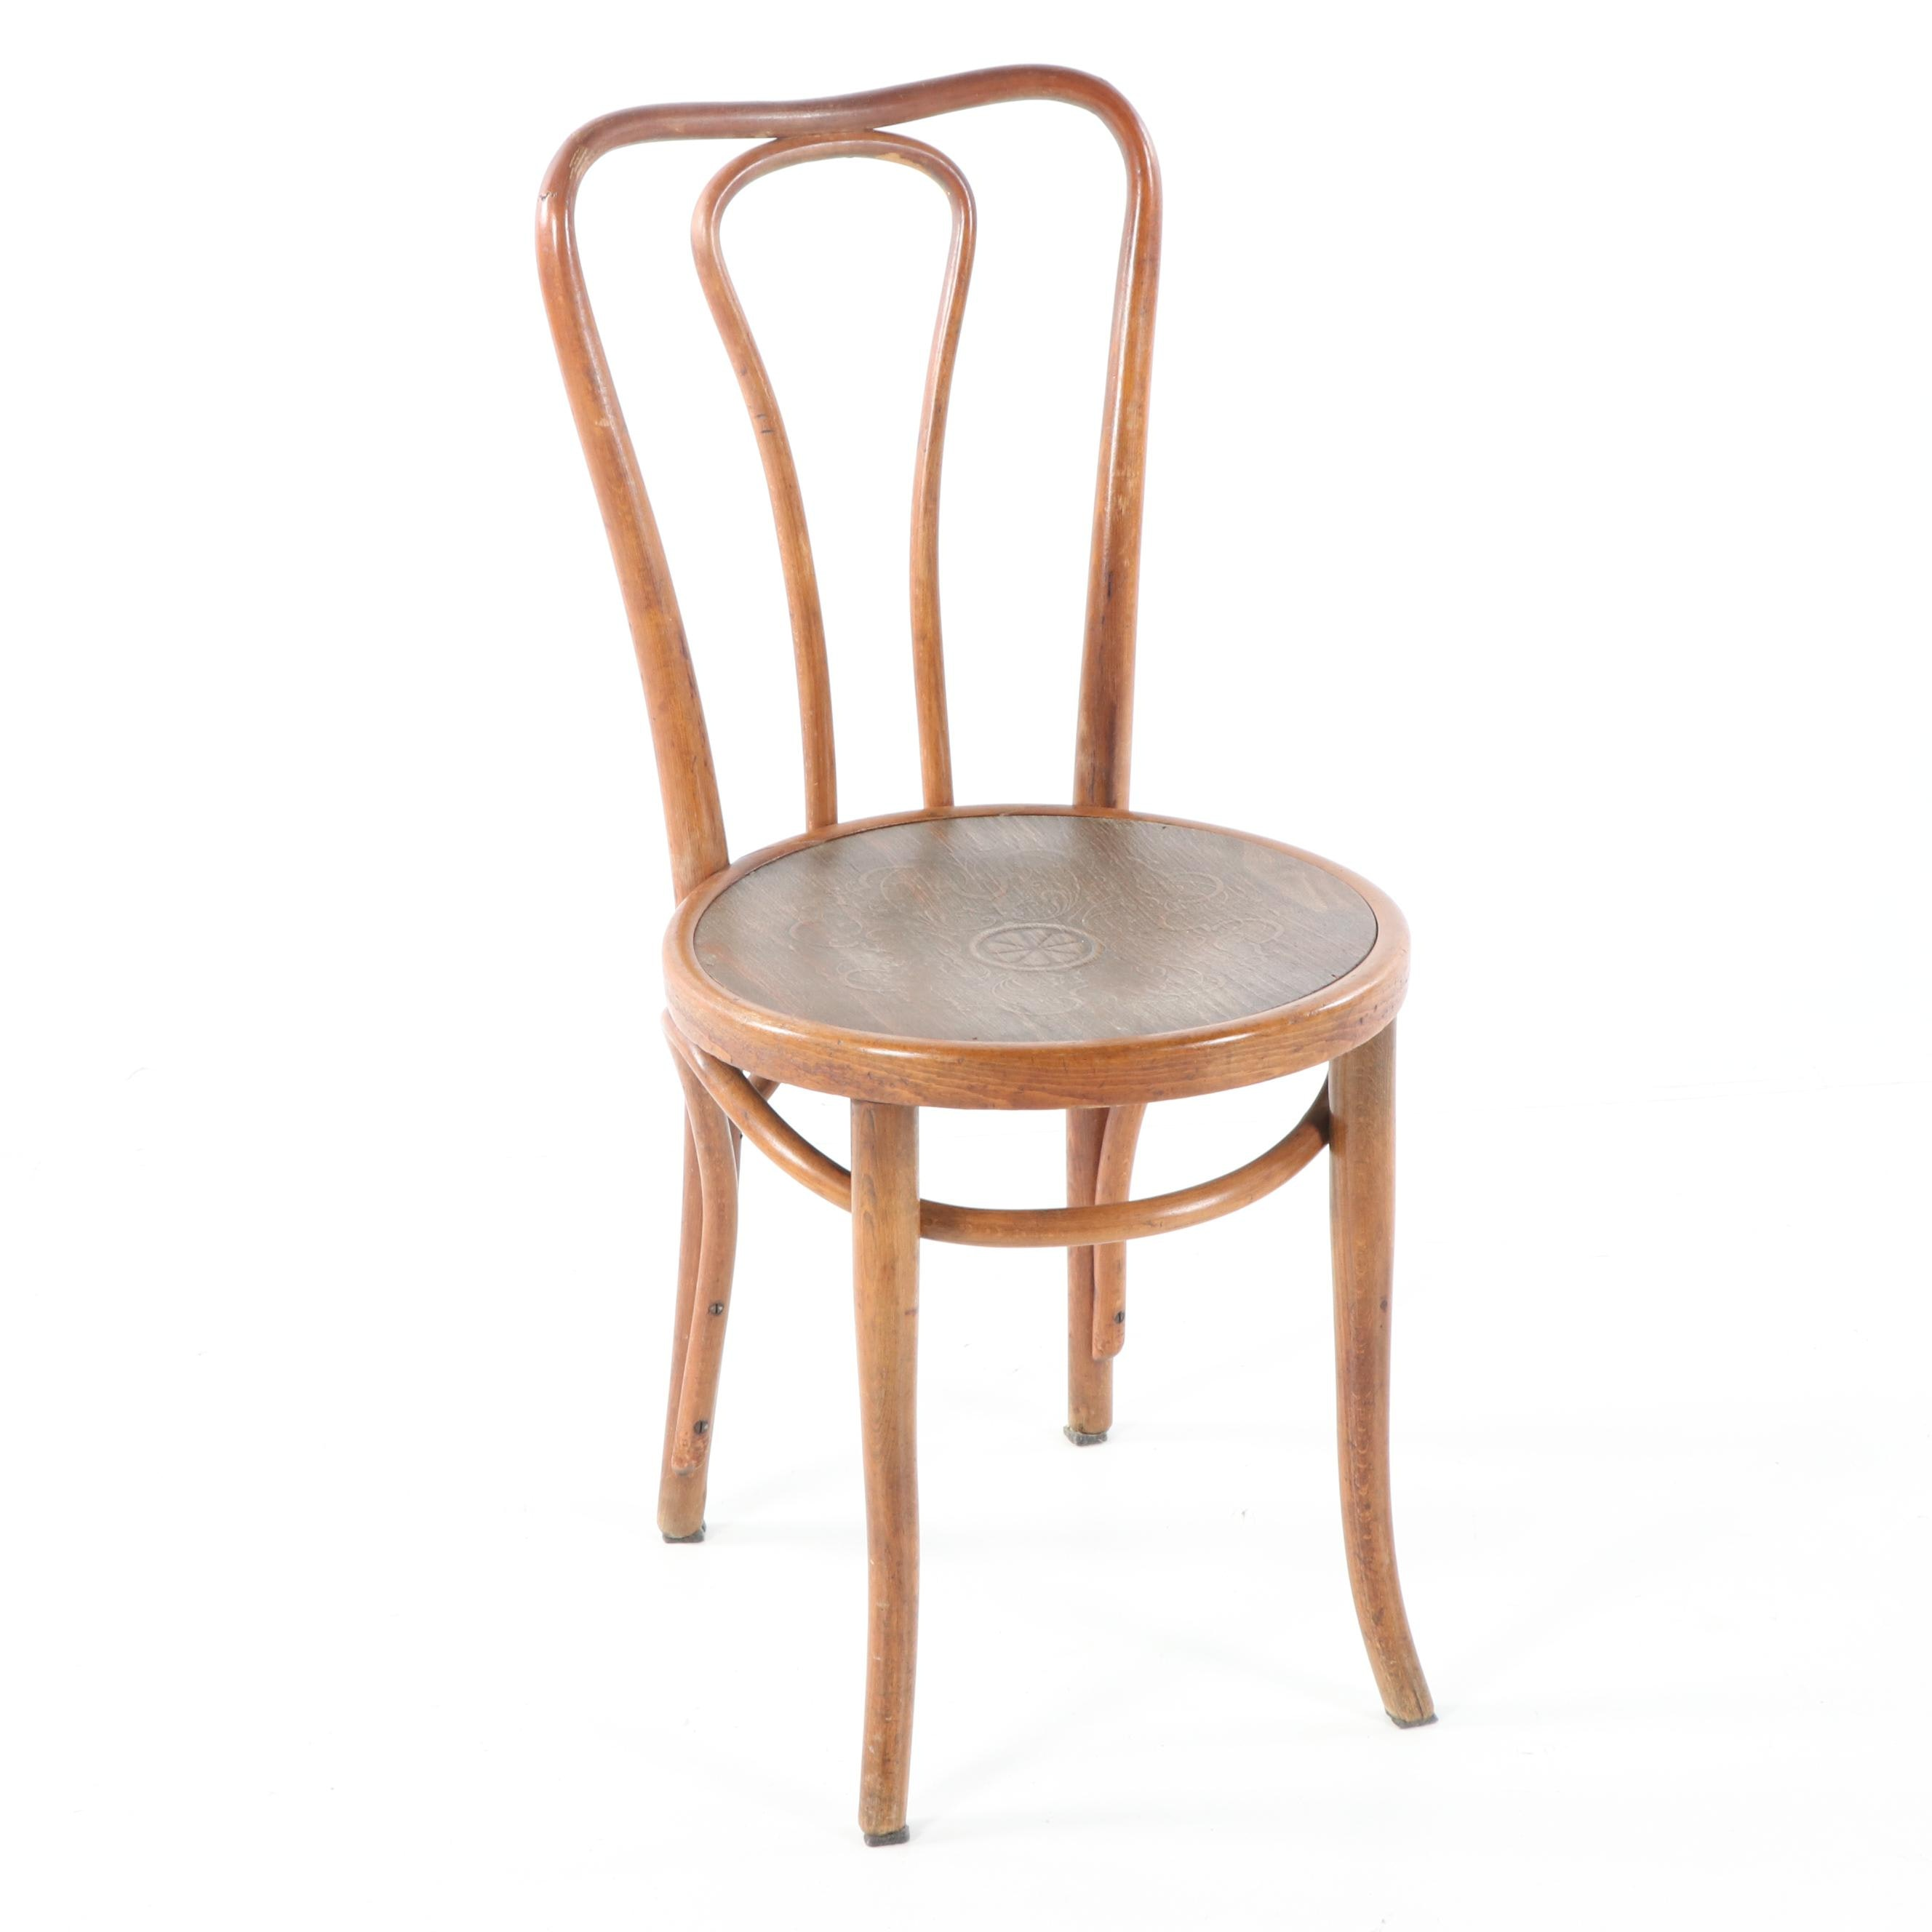 Bentwood Chair with Pressed Seat, 20th Century